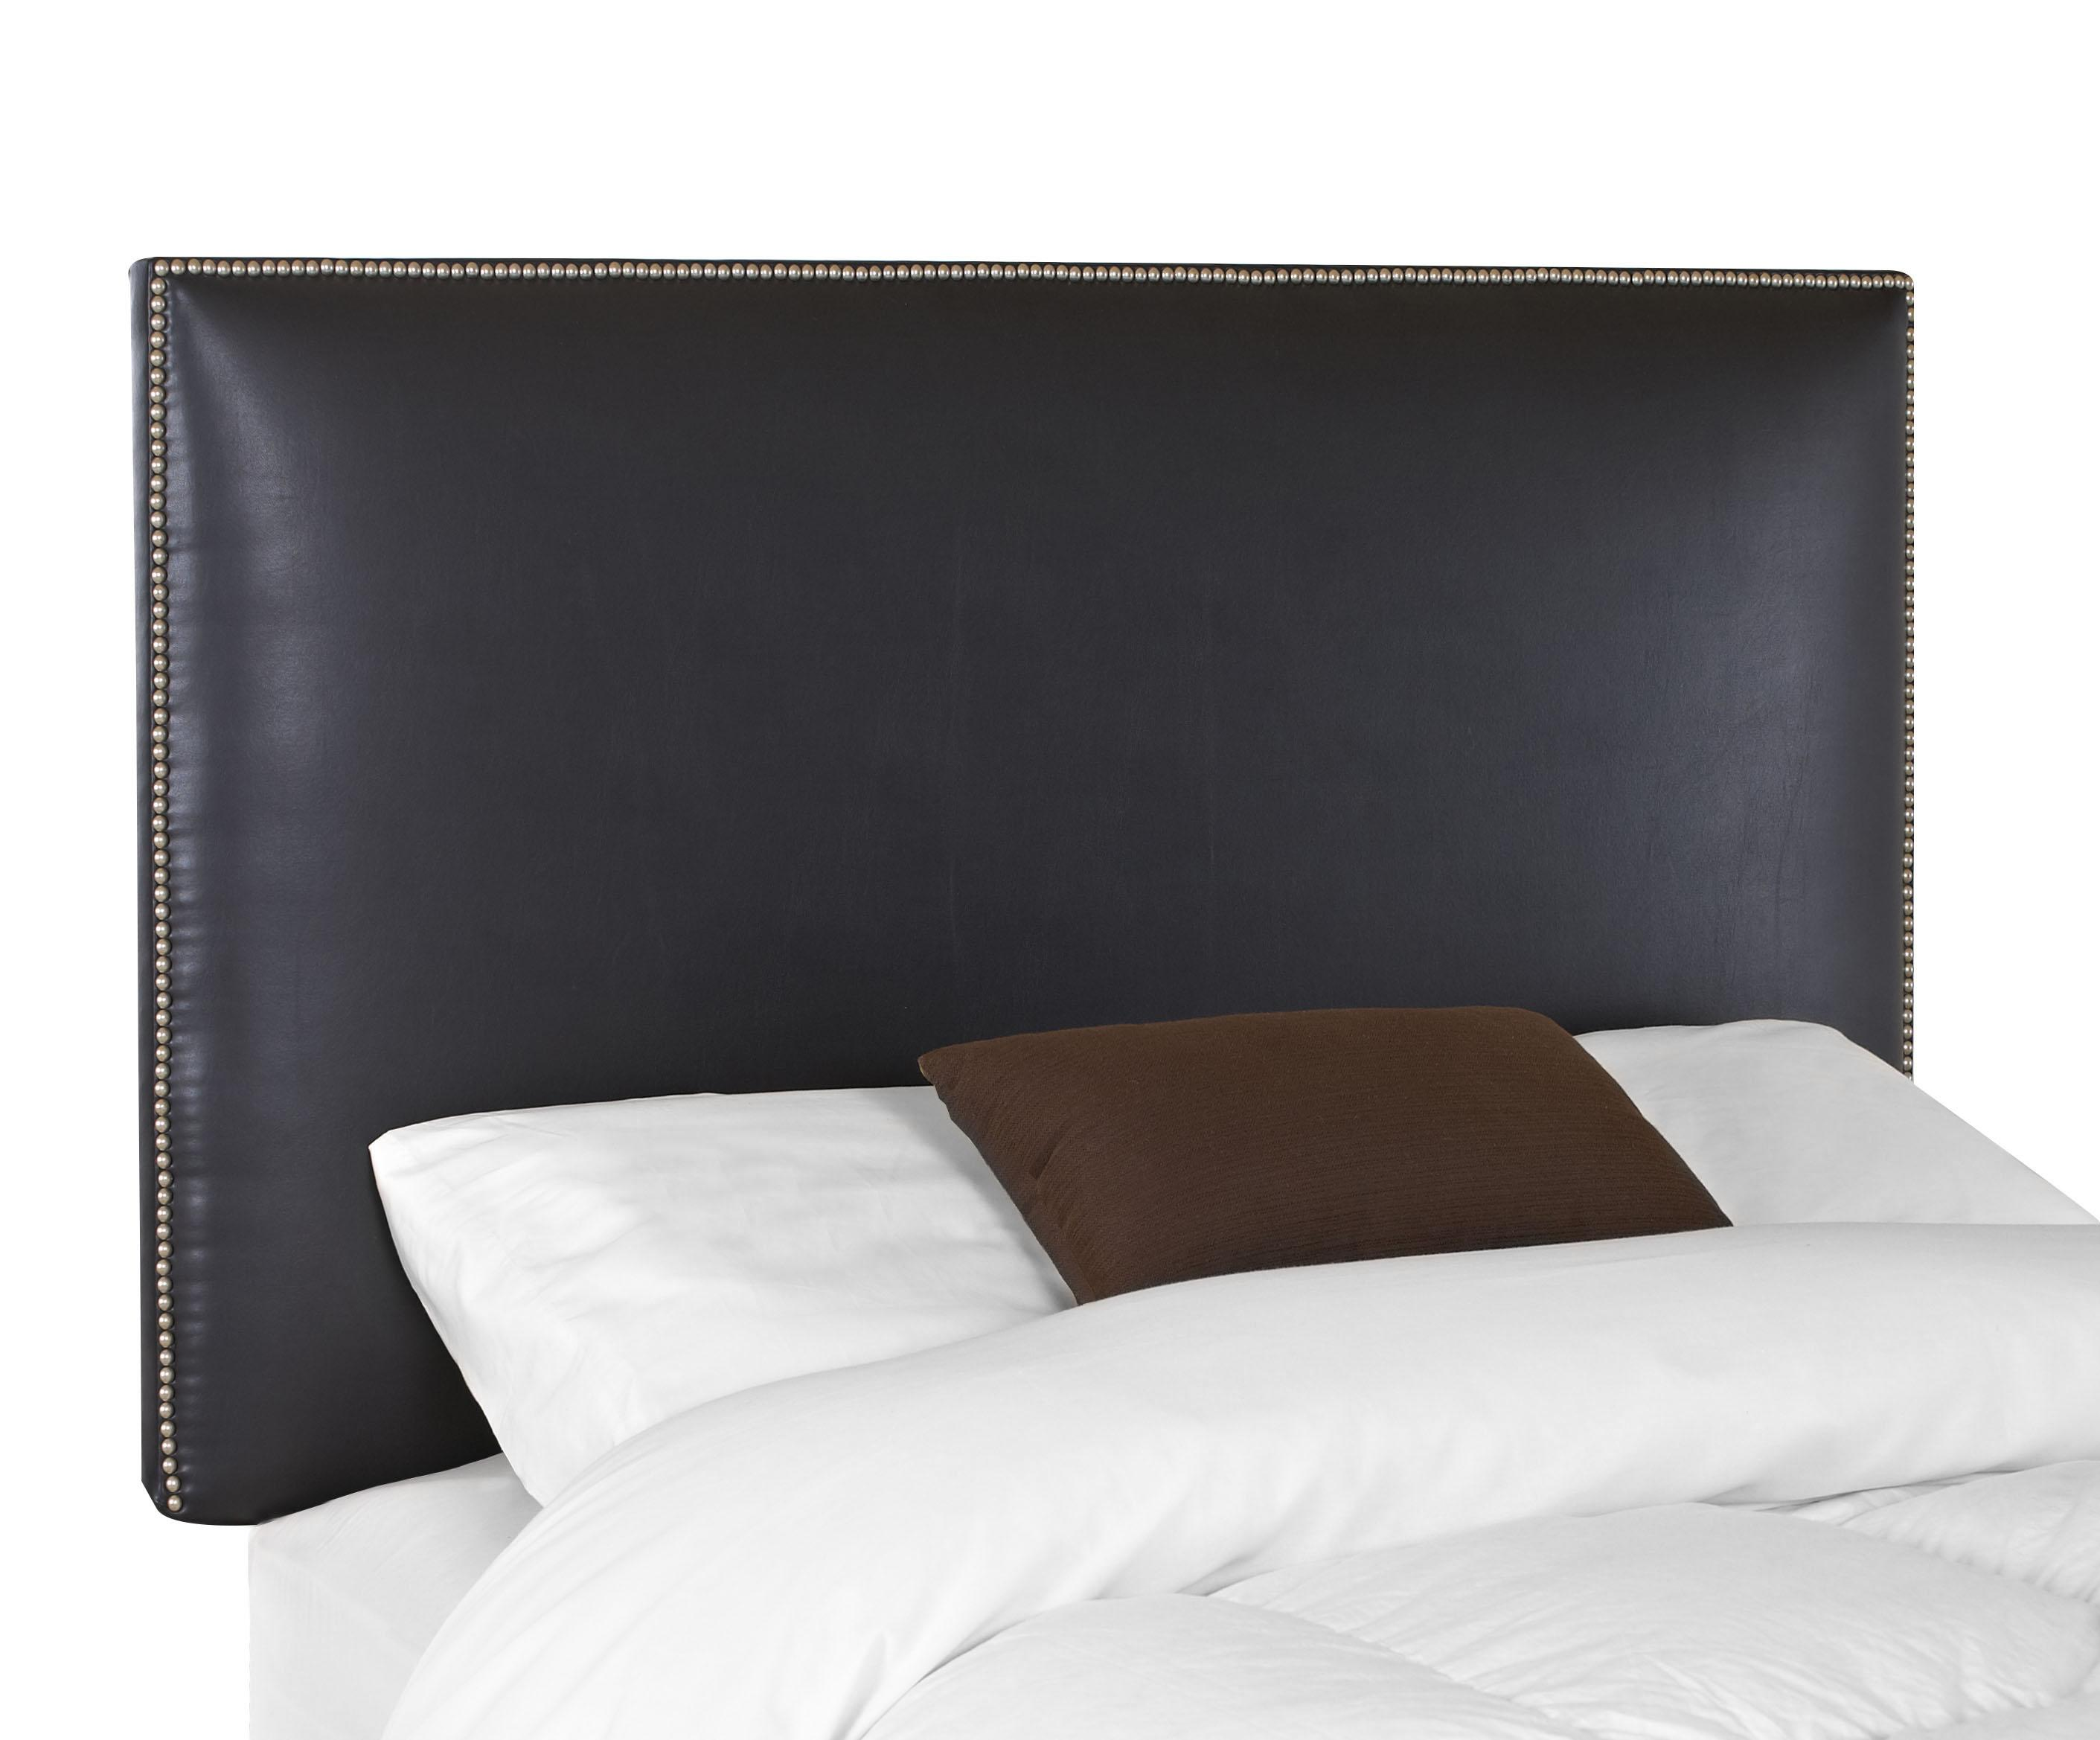 Upholstered Beds and Headboards Glade Twin Upholstered Headboard by Klaussner at Northeast Factory Direct